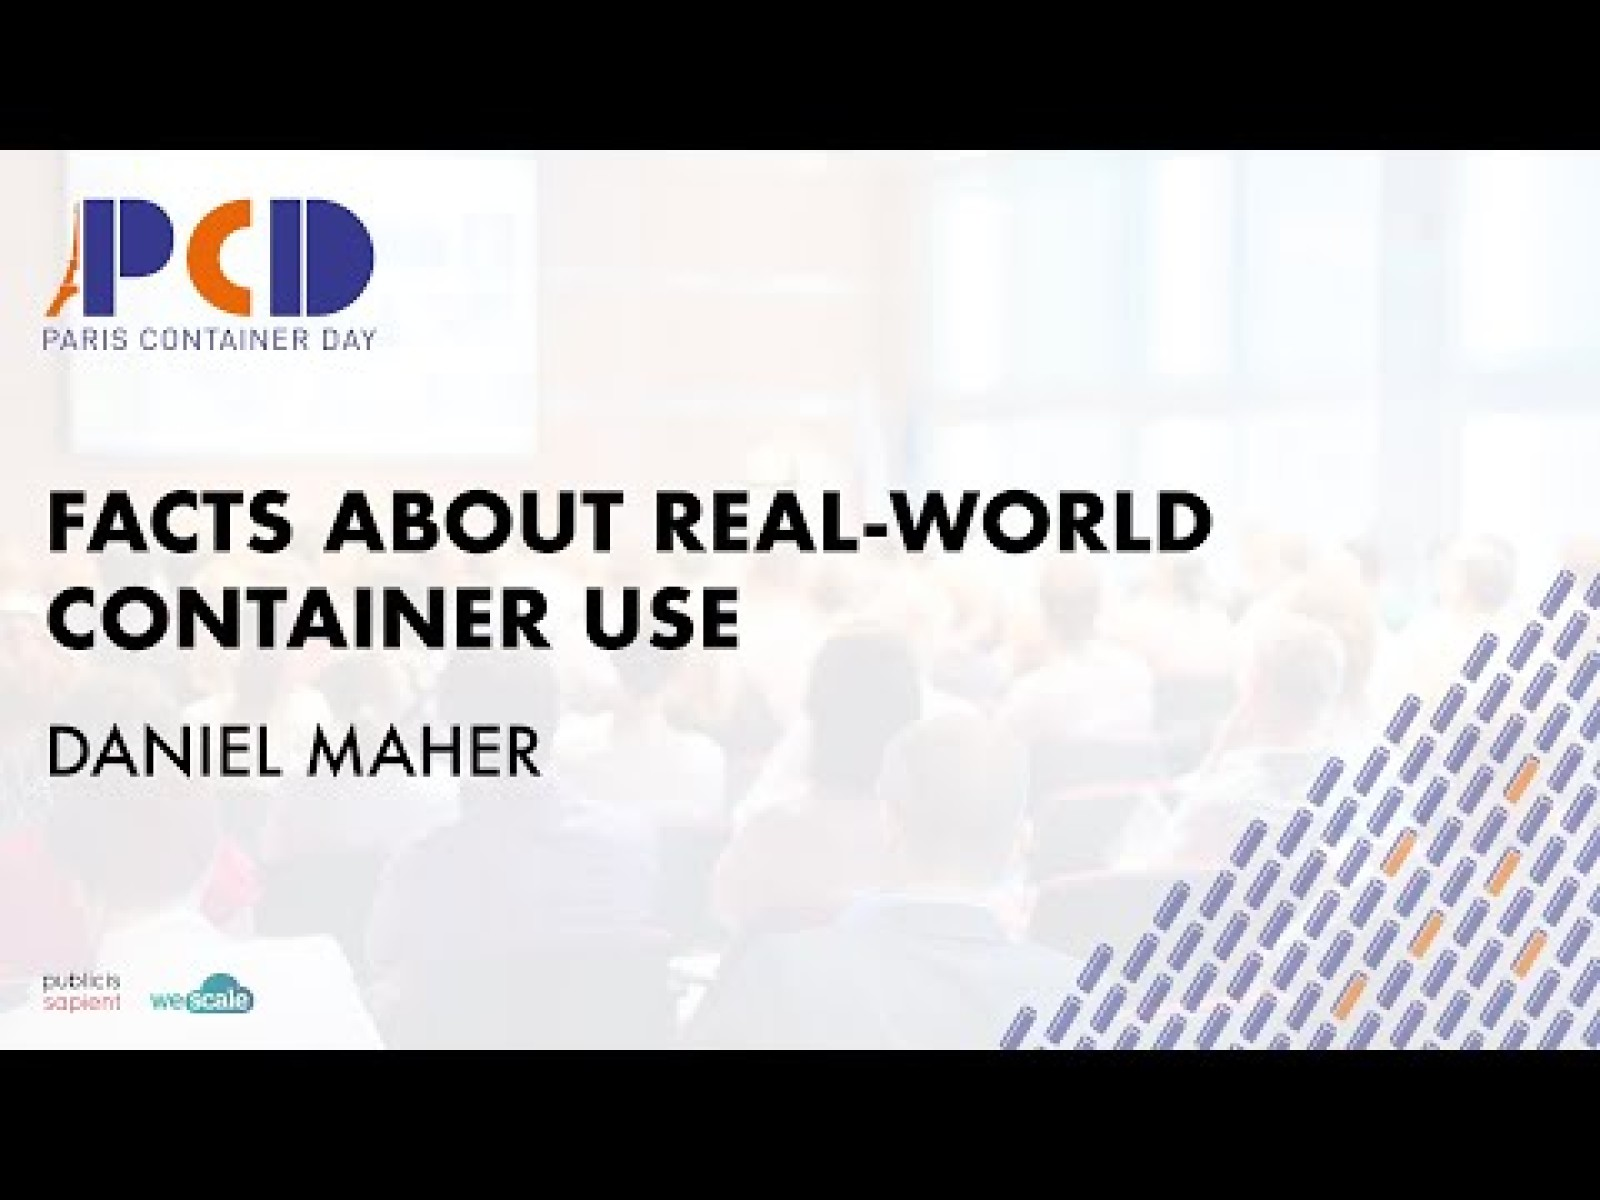 Facts About Real-World Container Use